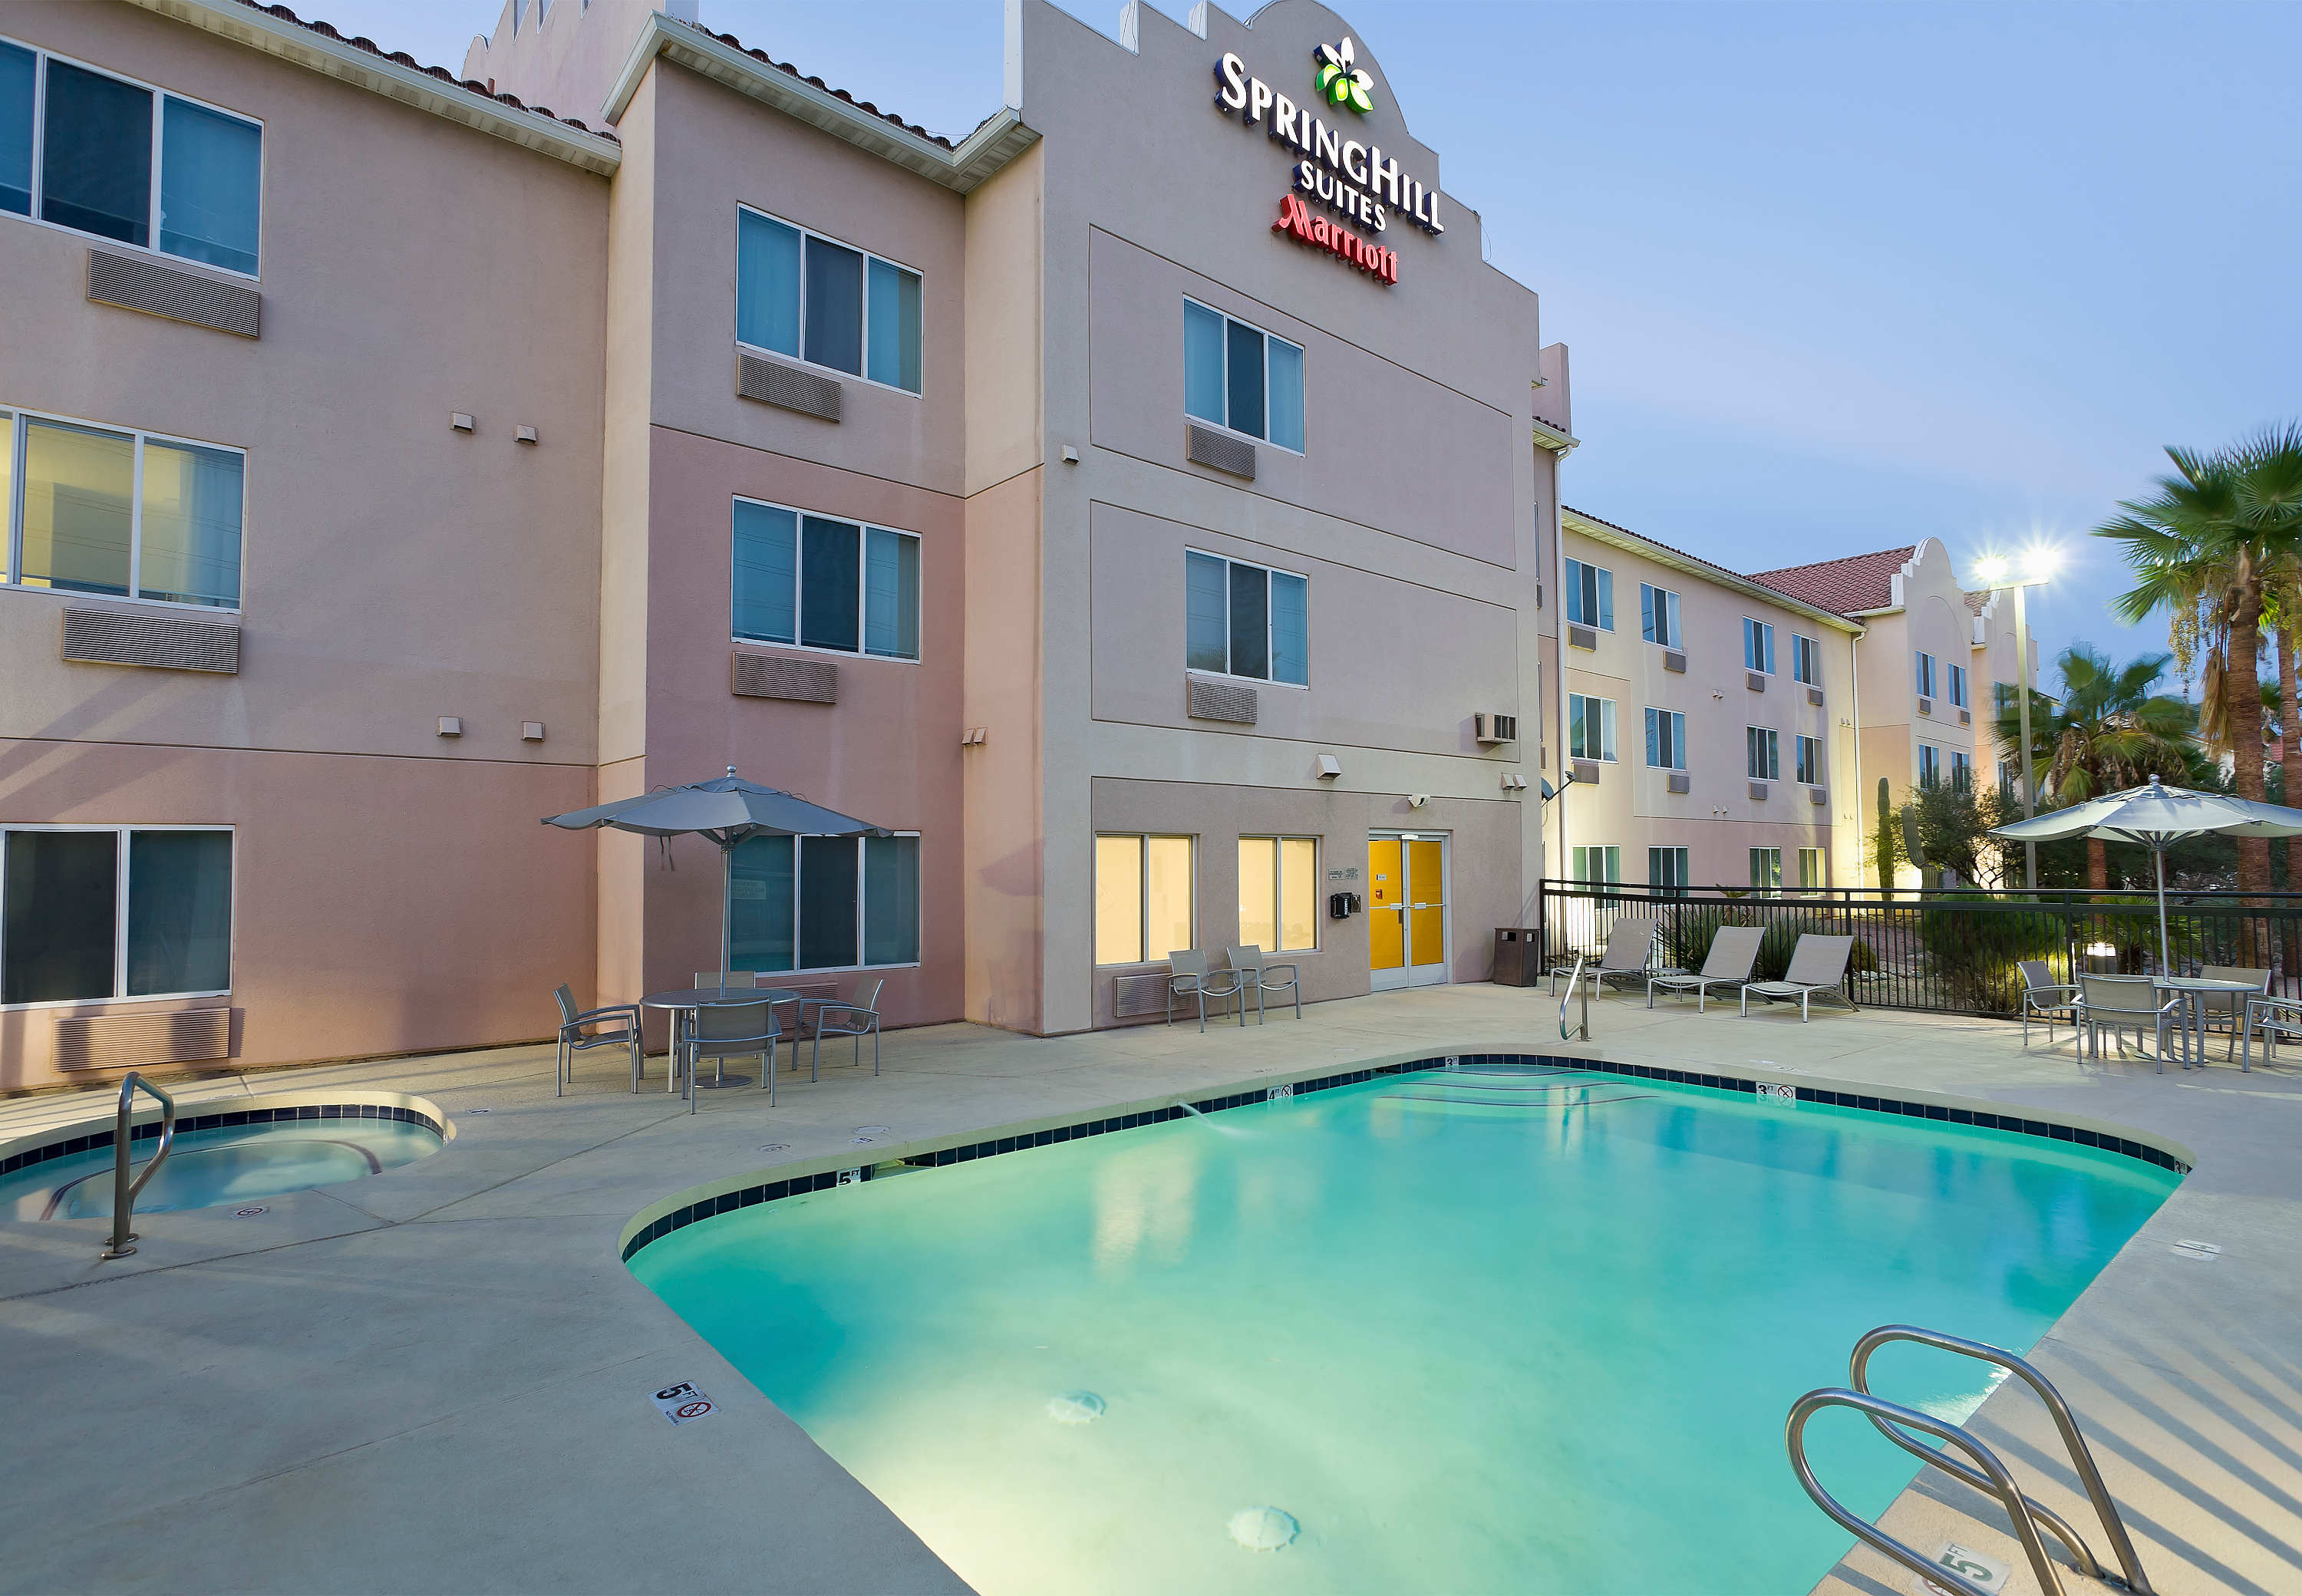 SpringHill Suites by Marriott Phoenix North image 12